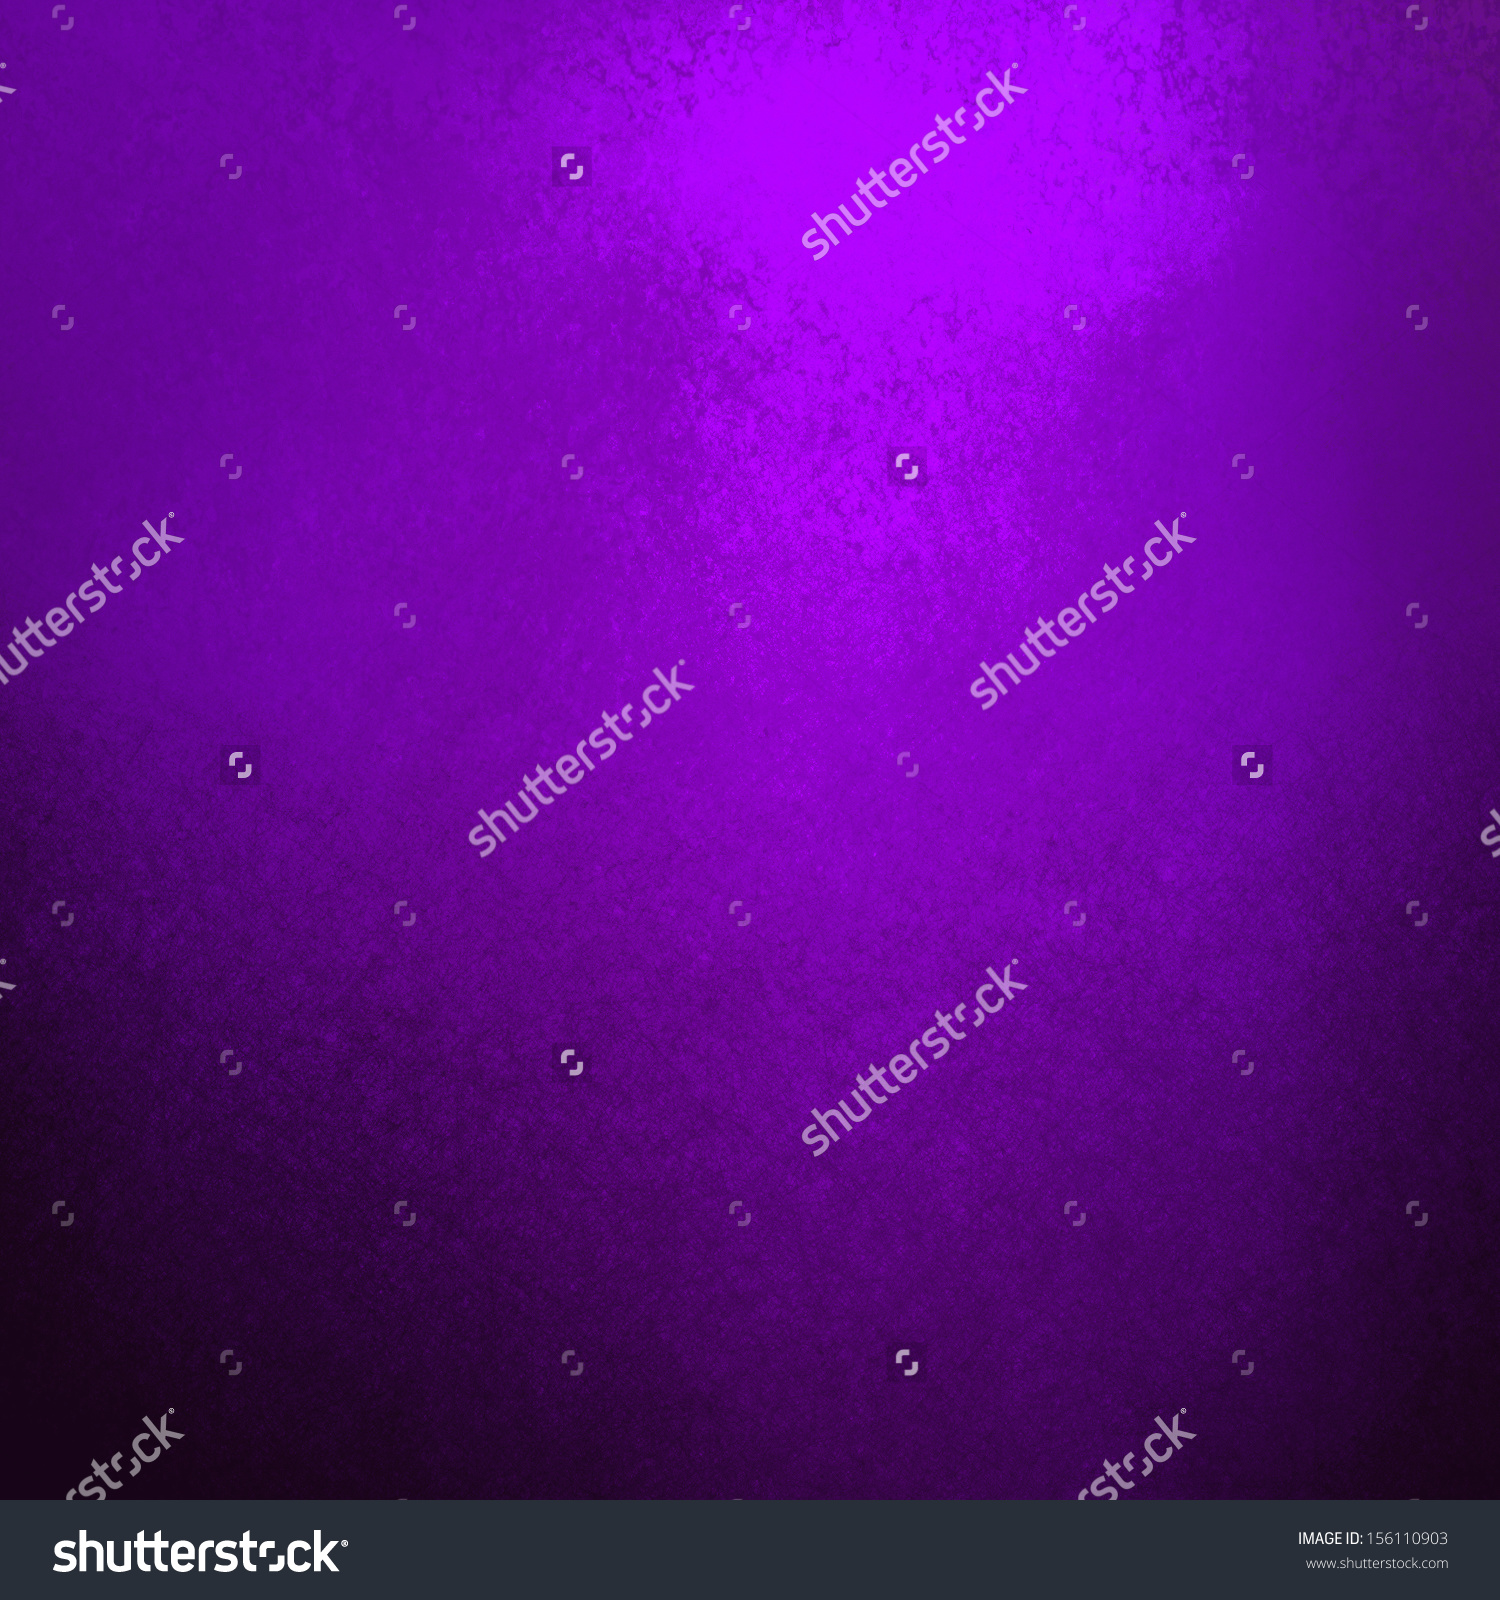 abstract purple background solid color vintage grunge background 1500x1600